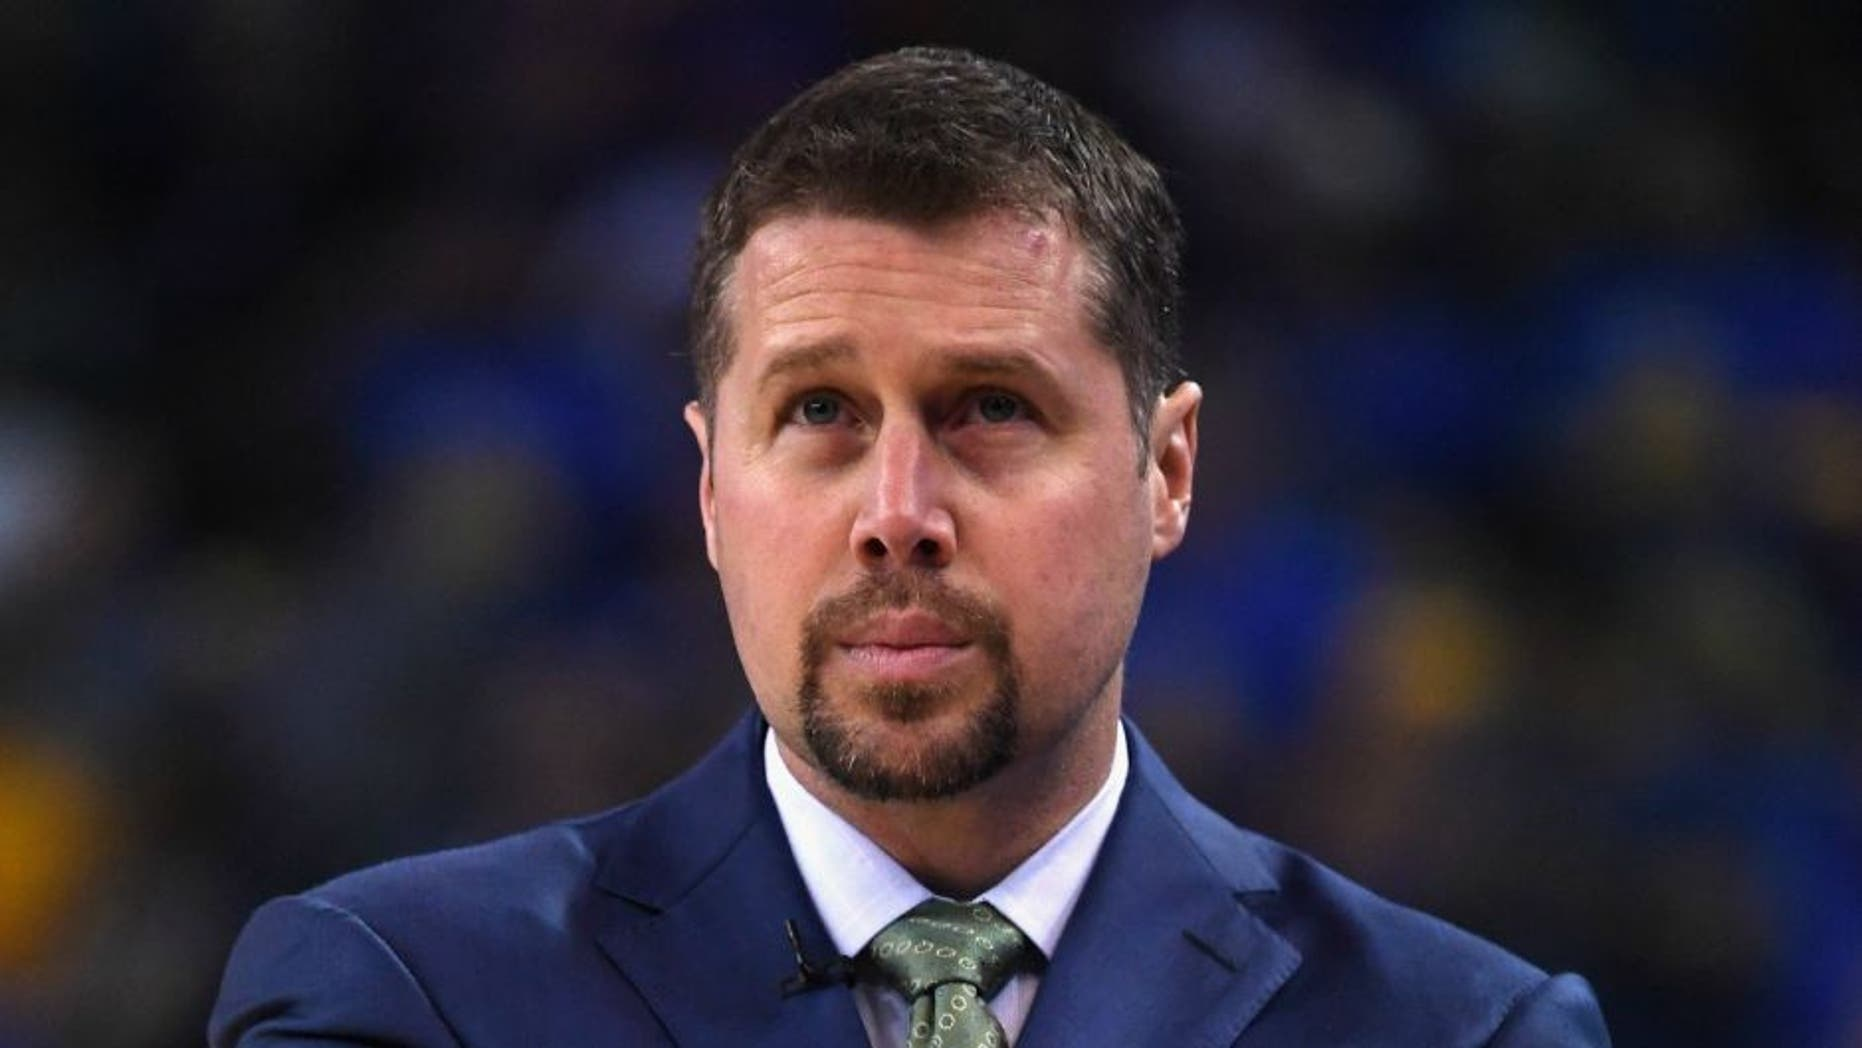 OAKLAND, CA - APRIL 13: Head coach David Joerger of the Memphis Grizzlies looks on during the game against the Golden State Warriors at ORACLE Arena on April 13, 2016 in Oakland, California. (Photo by Thearon W. Henderson/Getty Images)